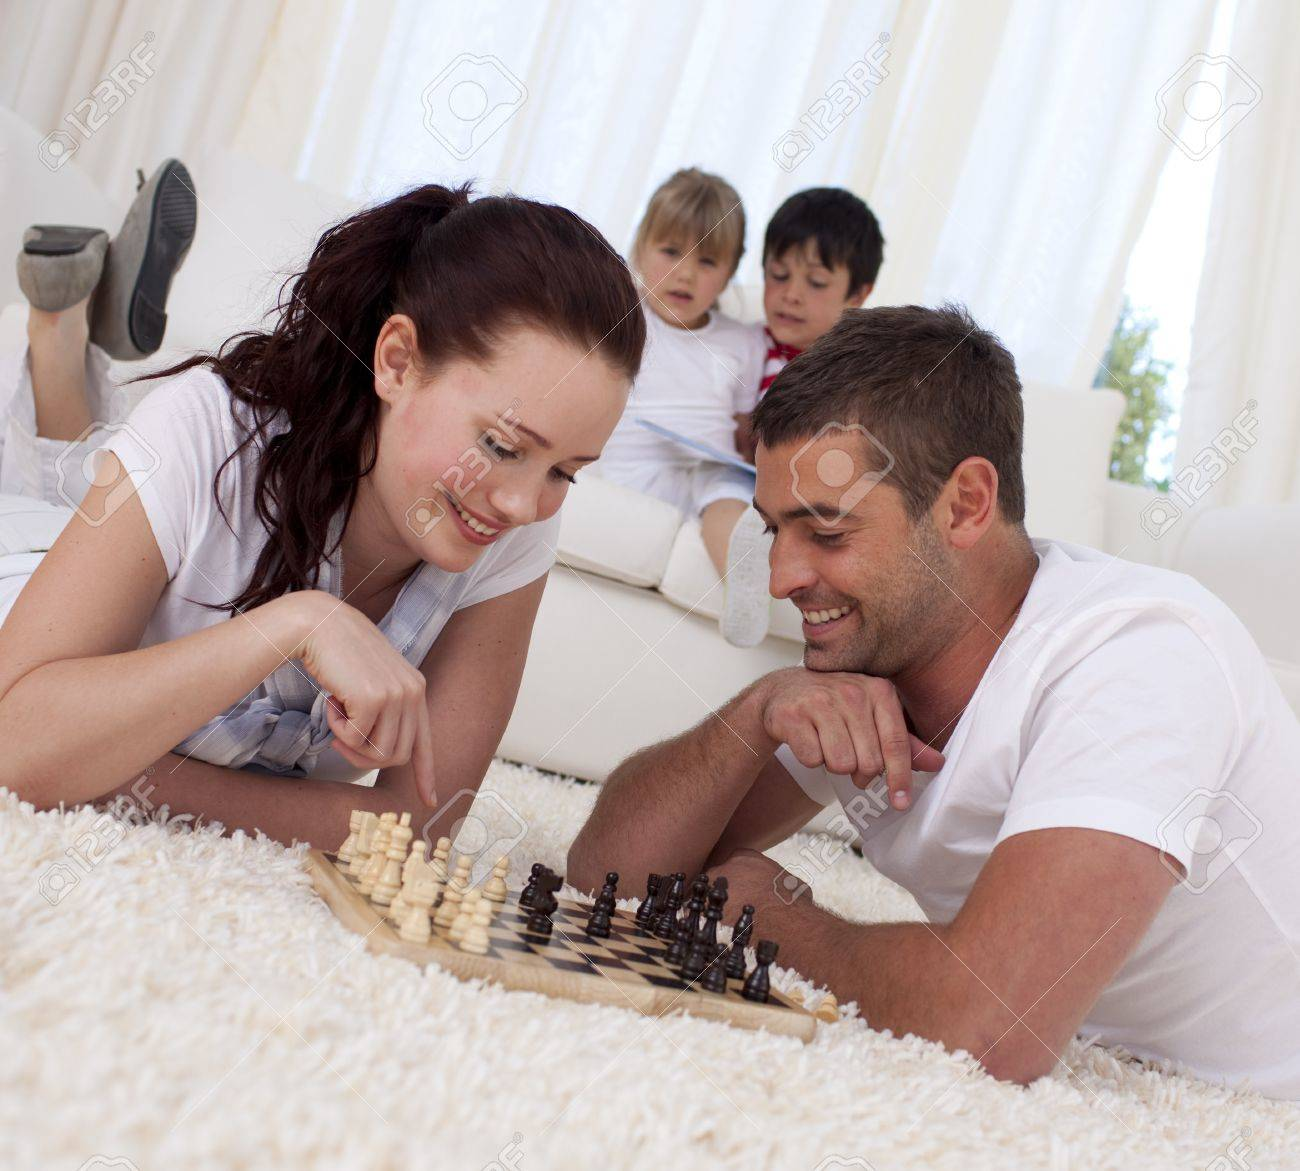 Smiling couple playing chess on floor in living-room Stock Photo - 10233735